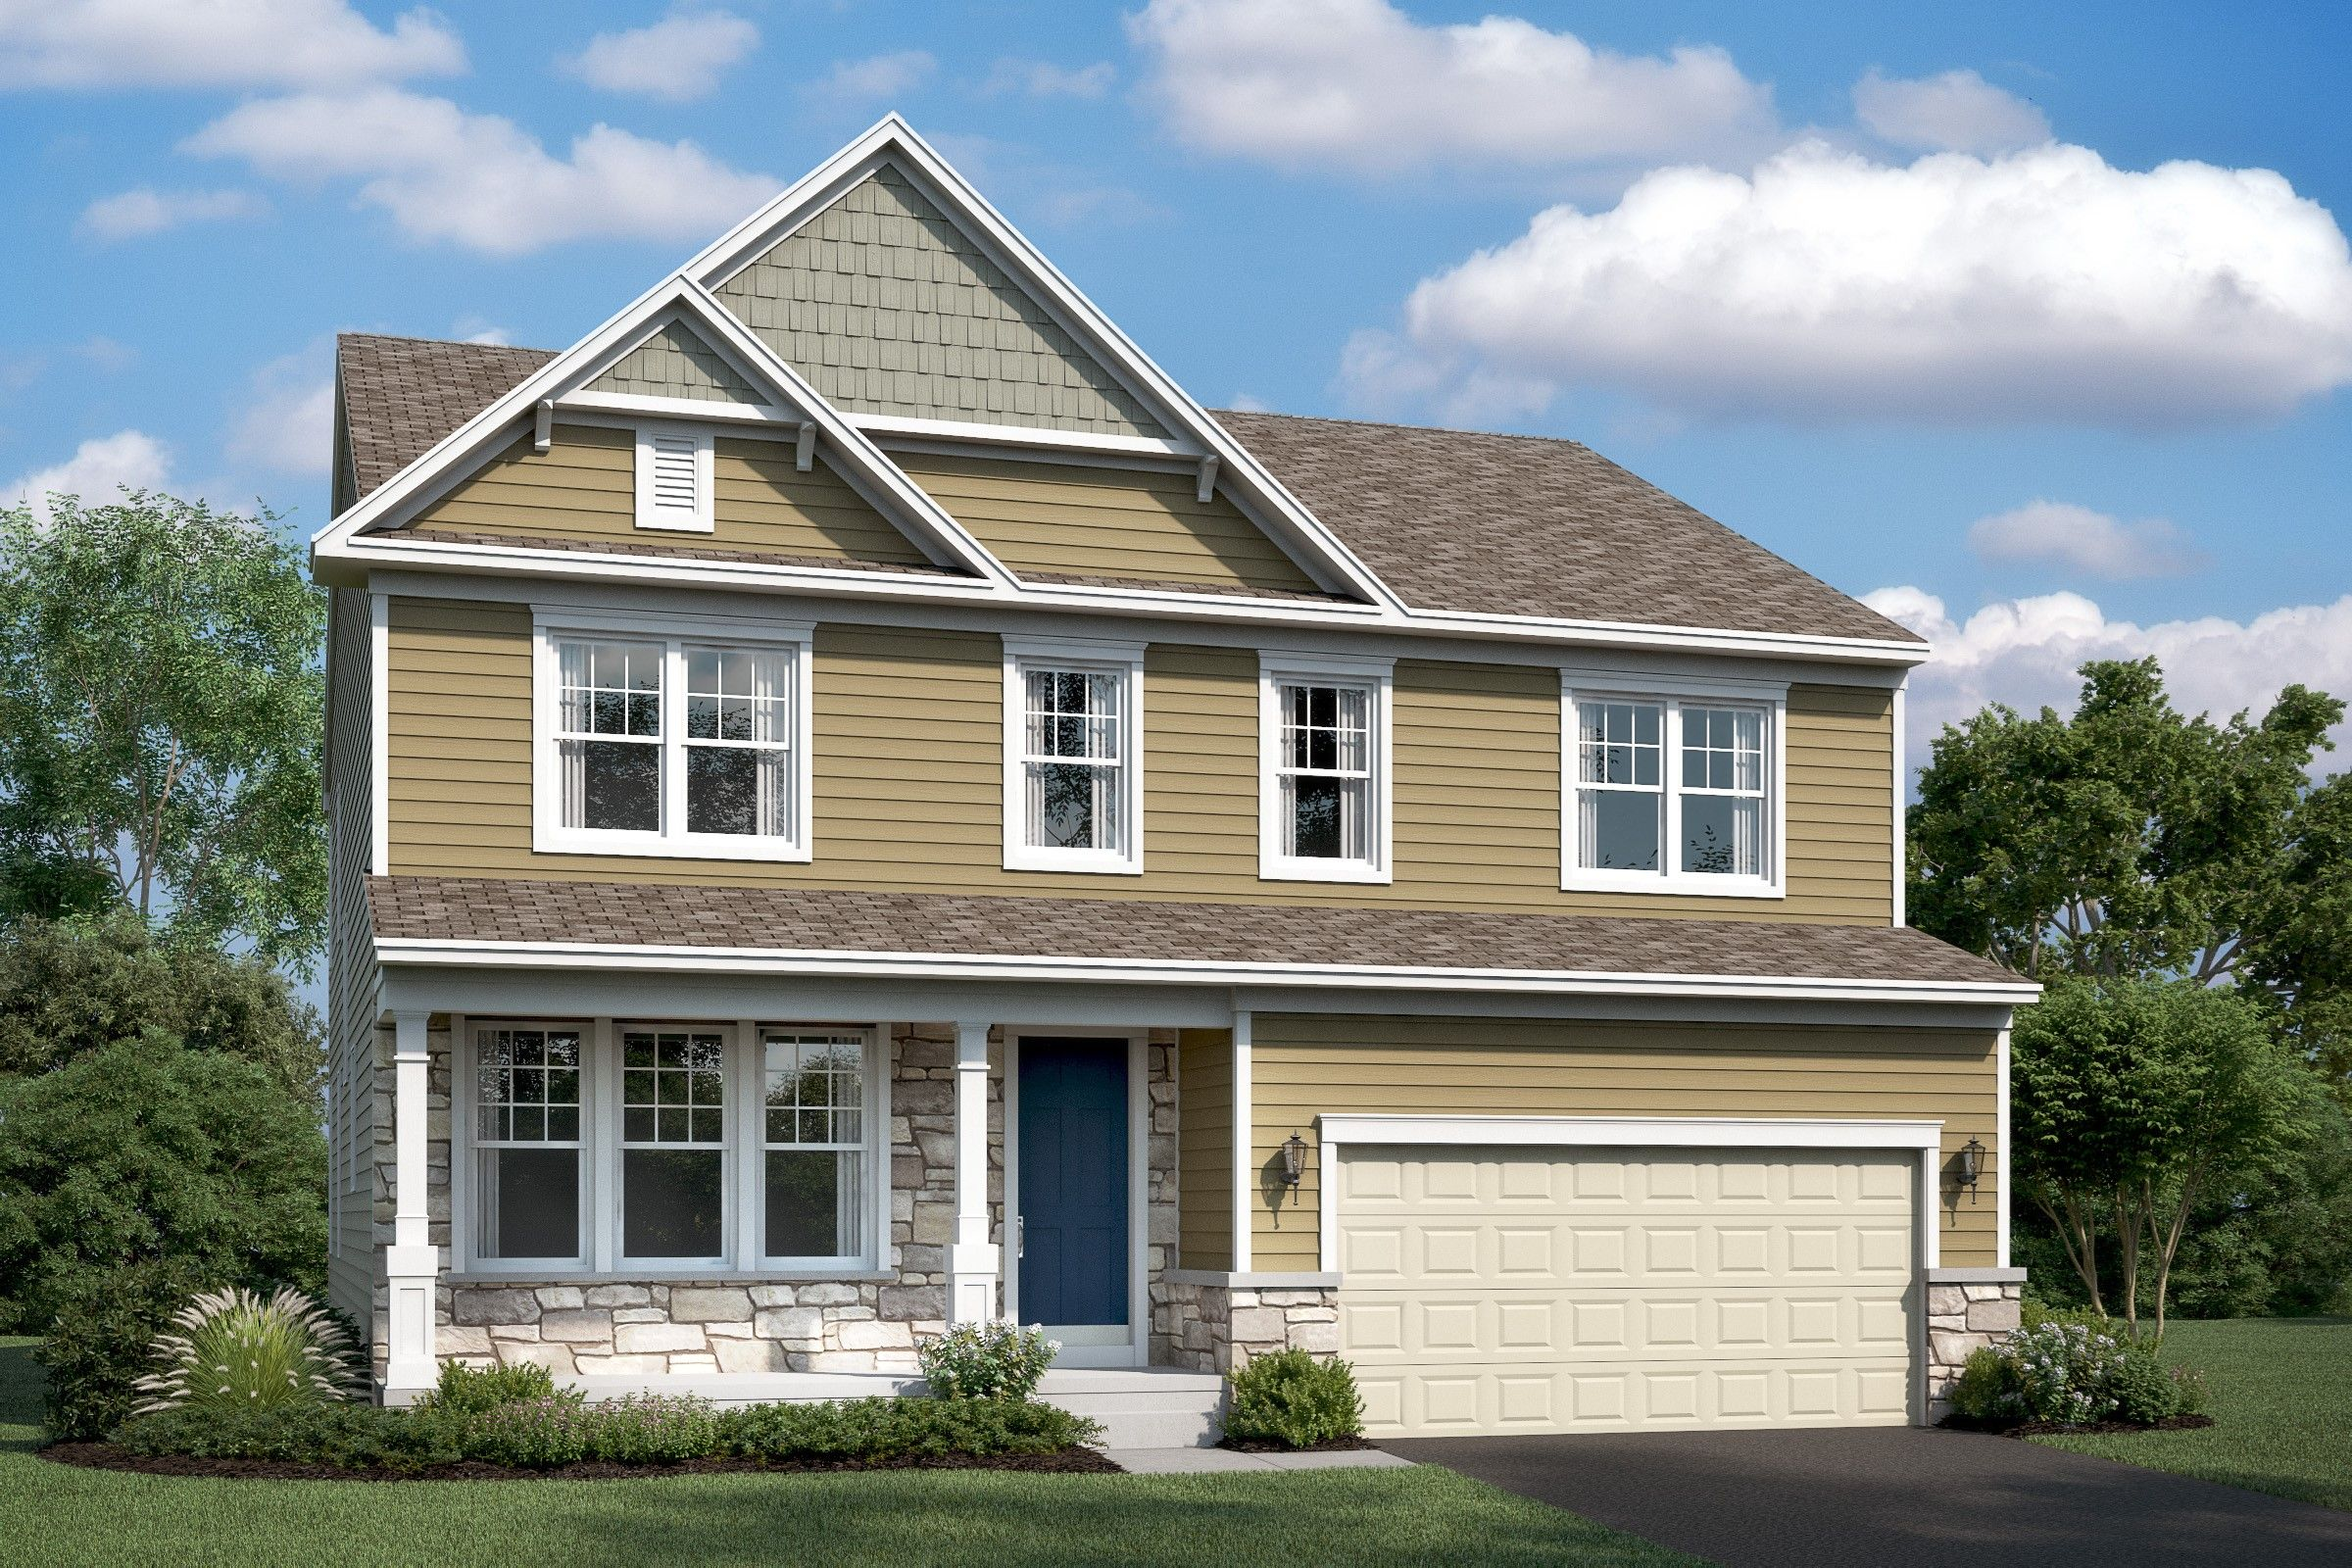 Single Family for Active at Stone Mill - Lancaster 7904 Meridian Drive Pasadena, Maryland 21122 United States